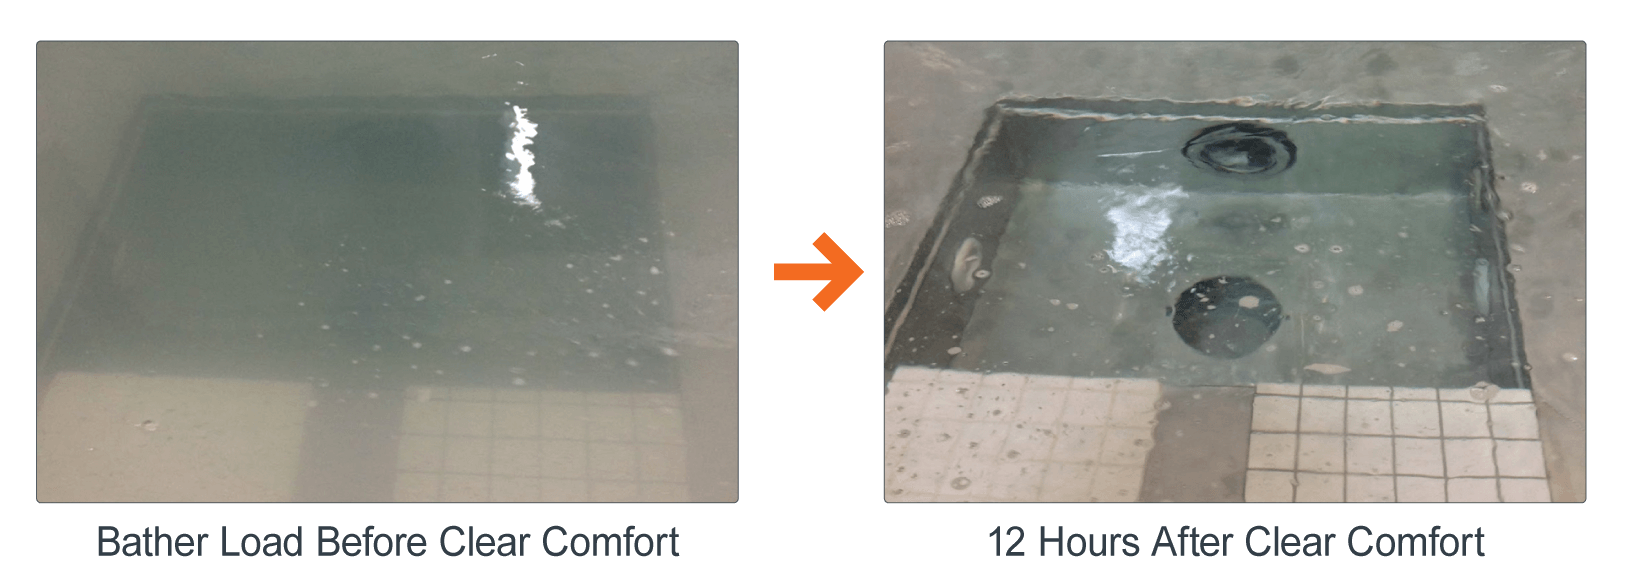 How to clear a dirty hot tub in 12 hours without toxic chemicals